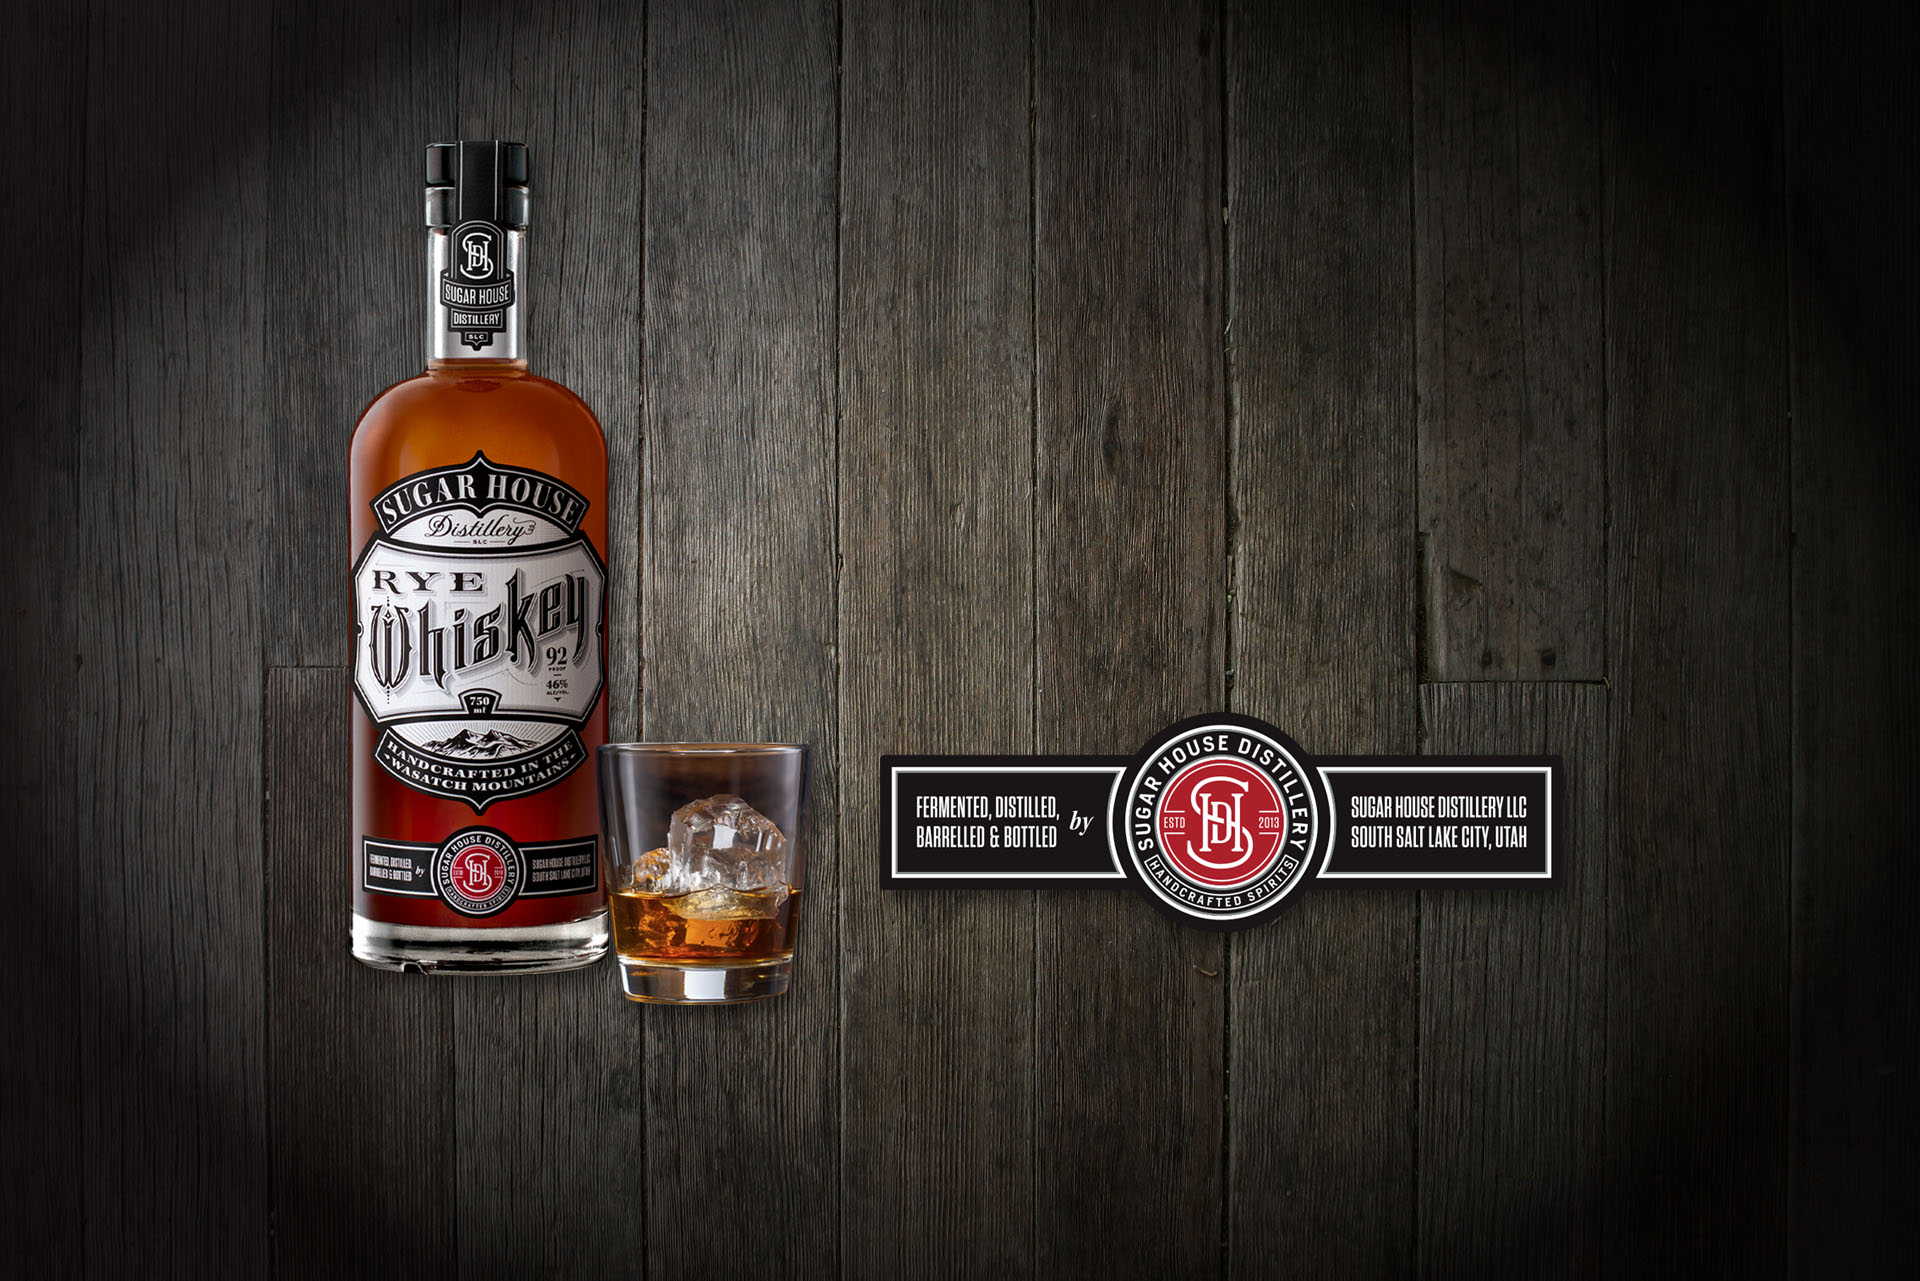 Sugar House Distillery Rye Whiskey